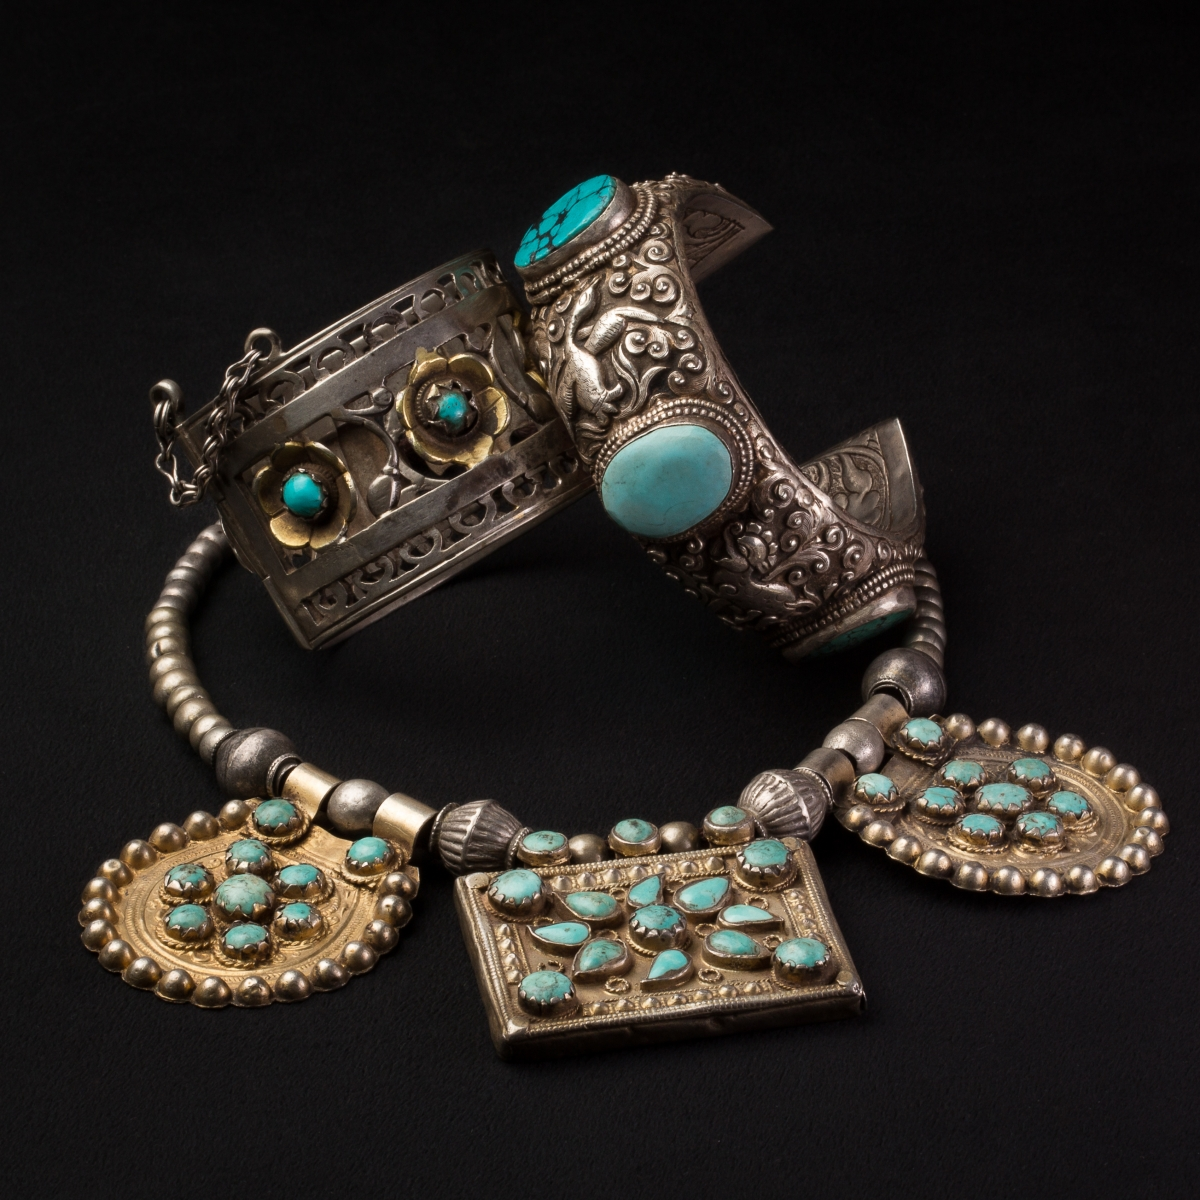 Photo of turquoise-and-siver-cuff-bangle-tibet-xix-th-cent